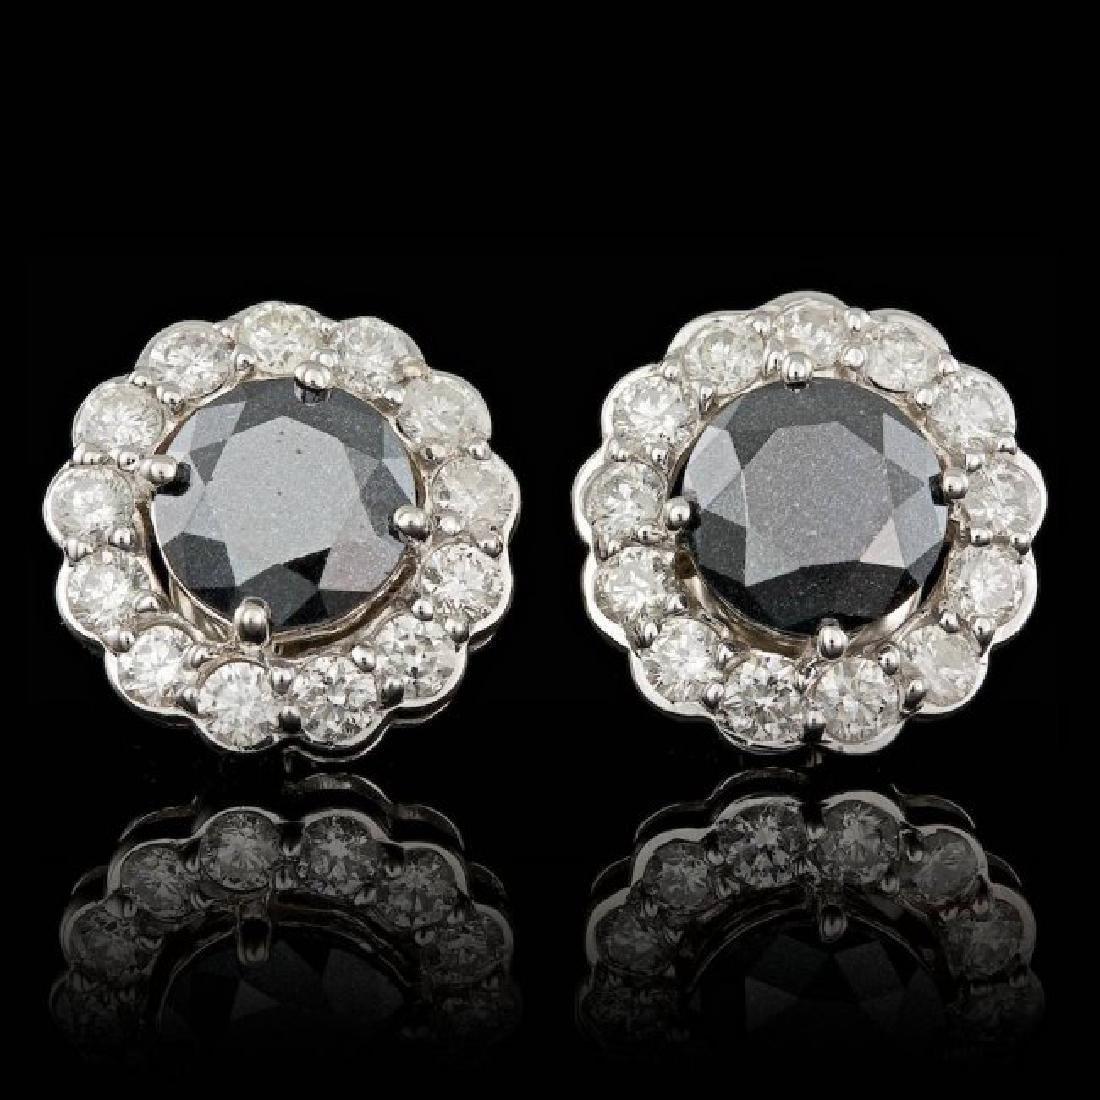 14k White Gold 6ct Diamond Earrings